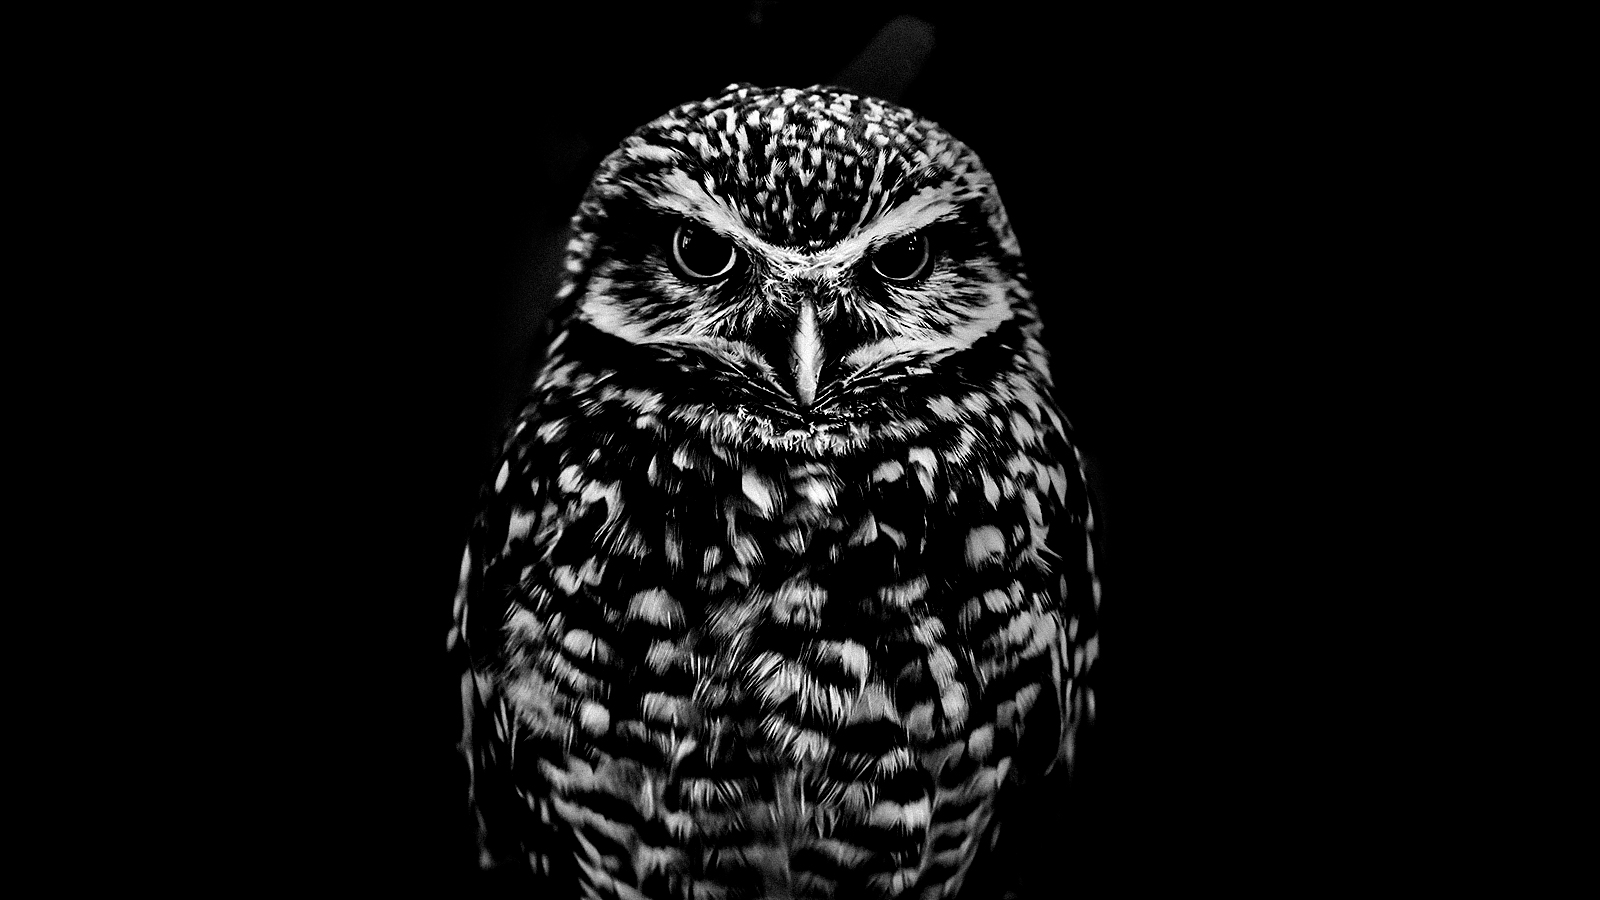 It turns out being a night owl doesn't affect productivity